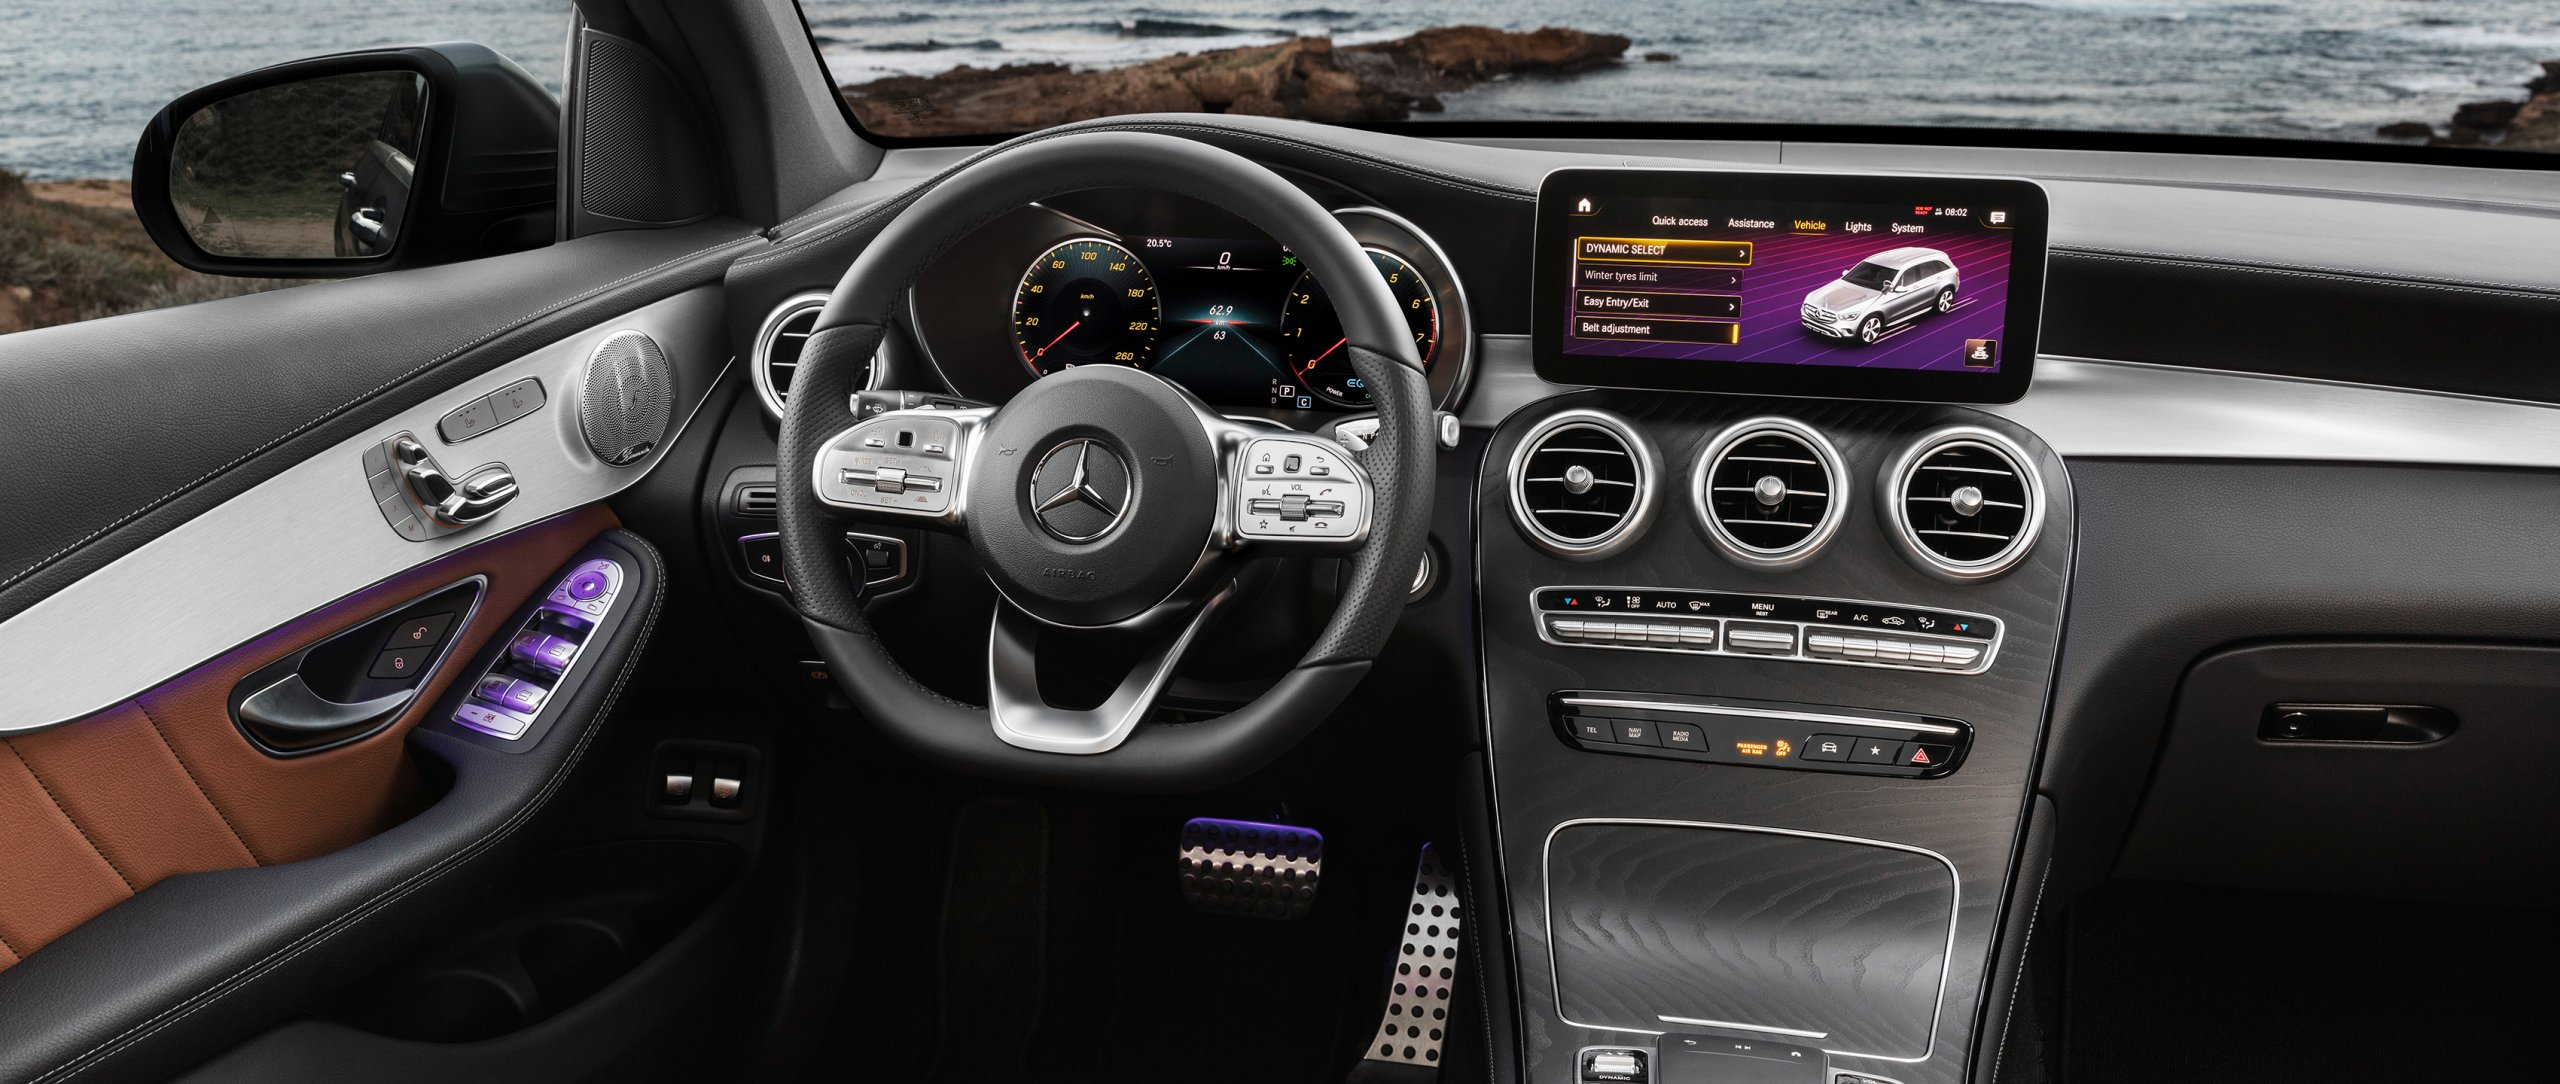 The interior of the new 2019 Mercedes-Benz GLC (X 253) in leather saddle brown.